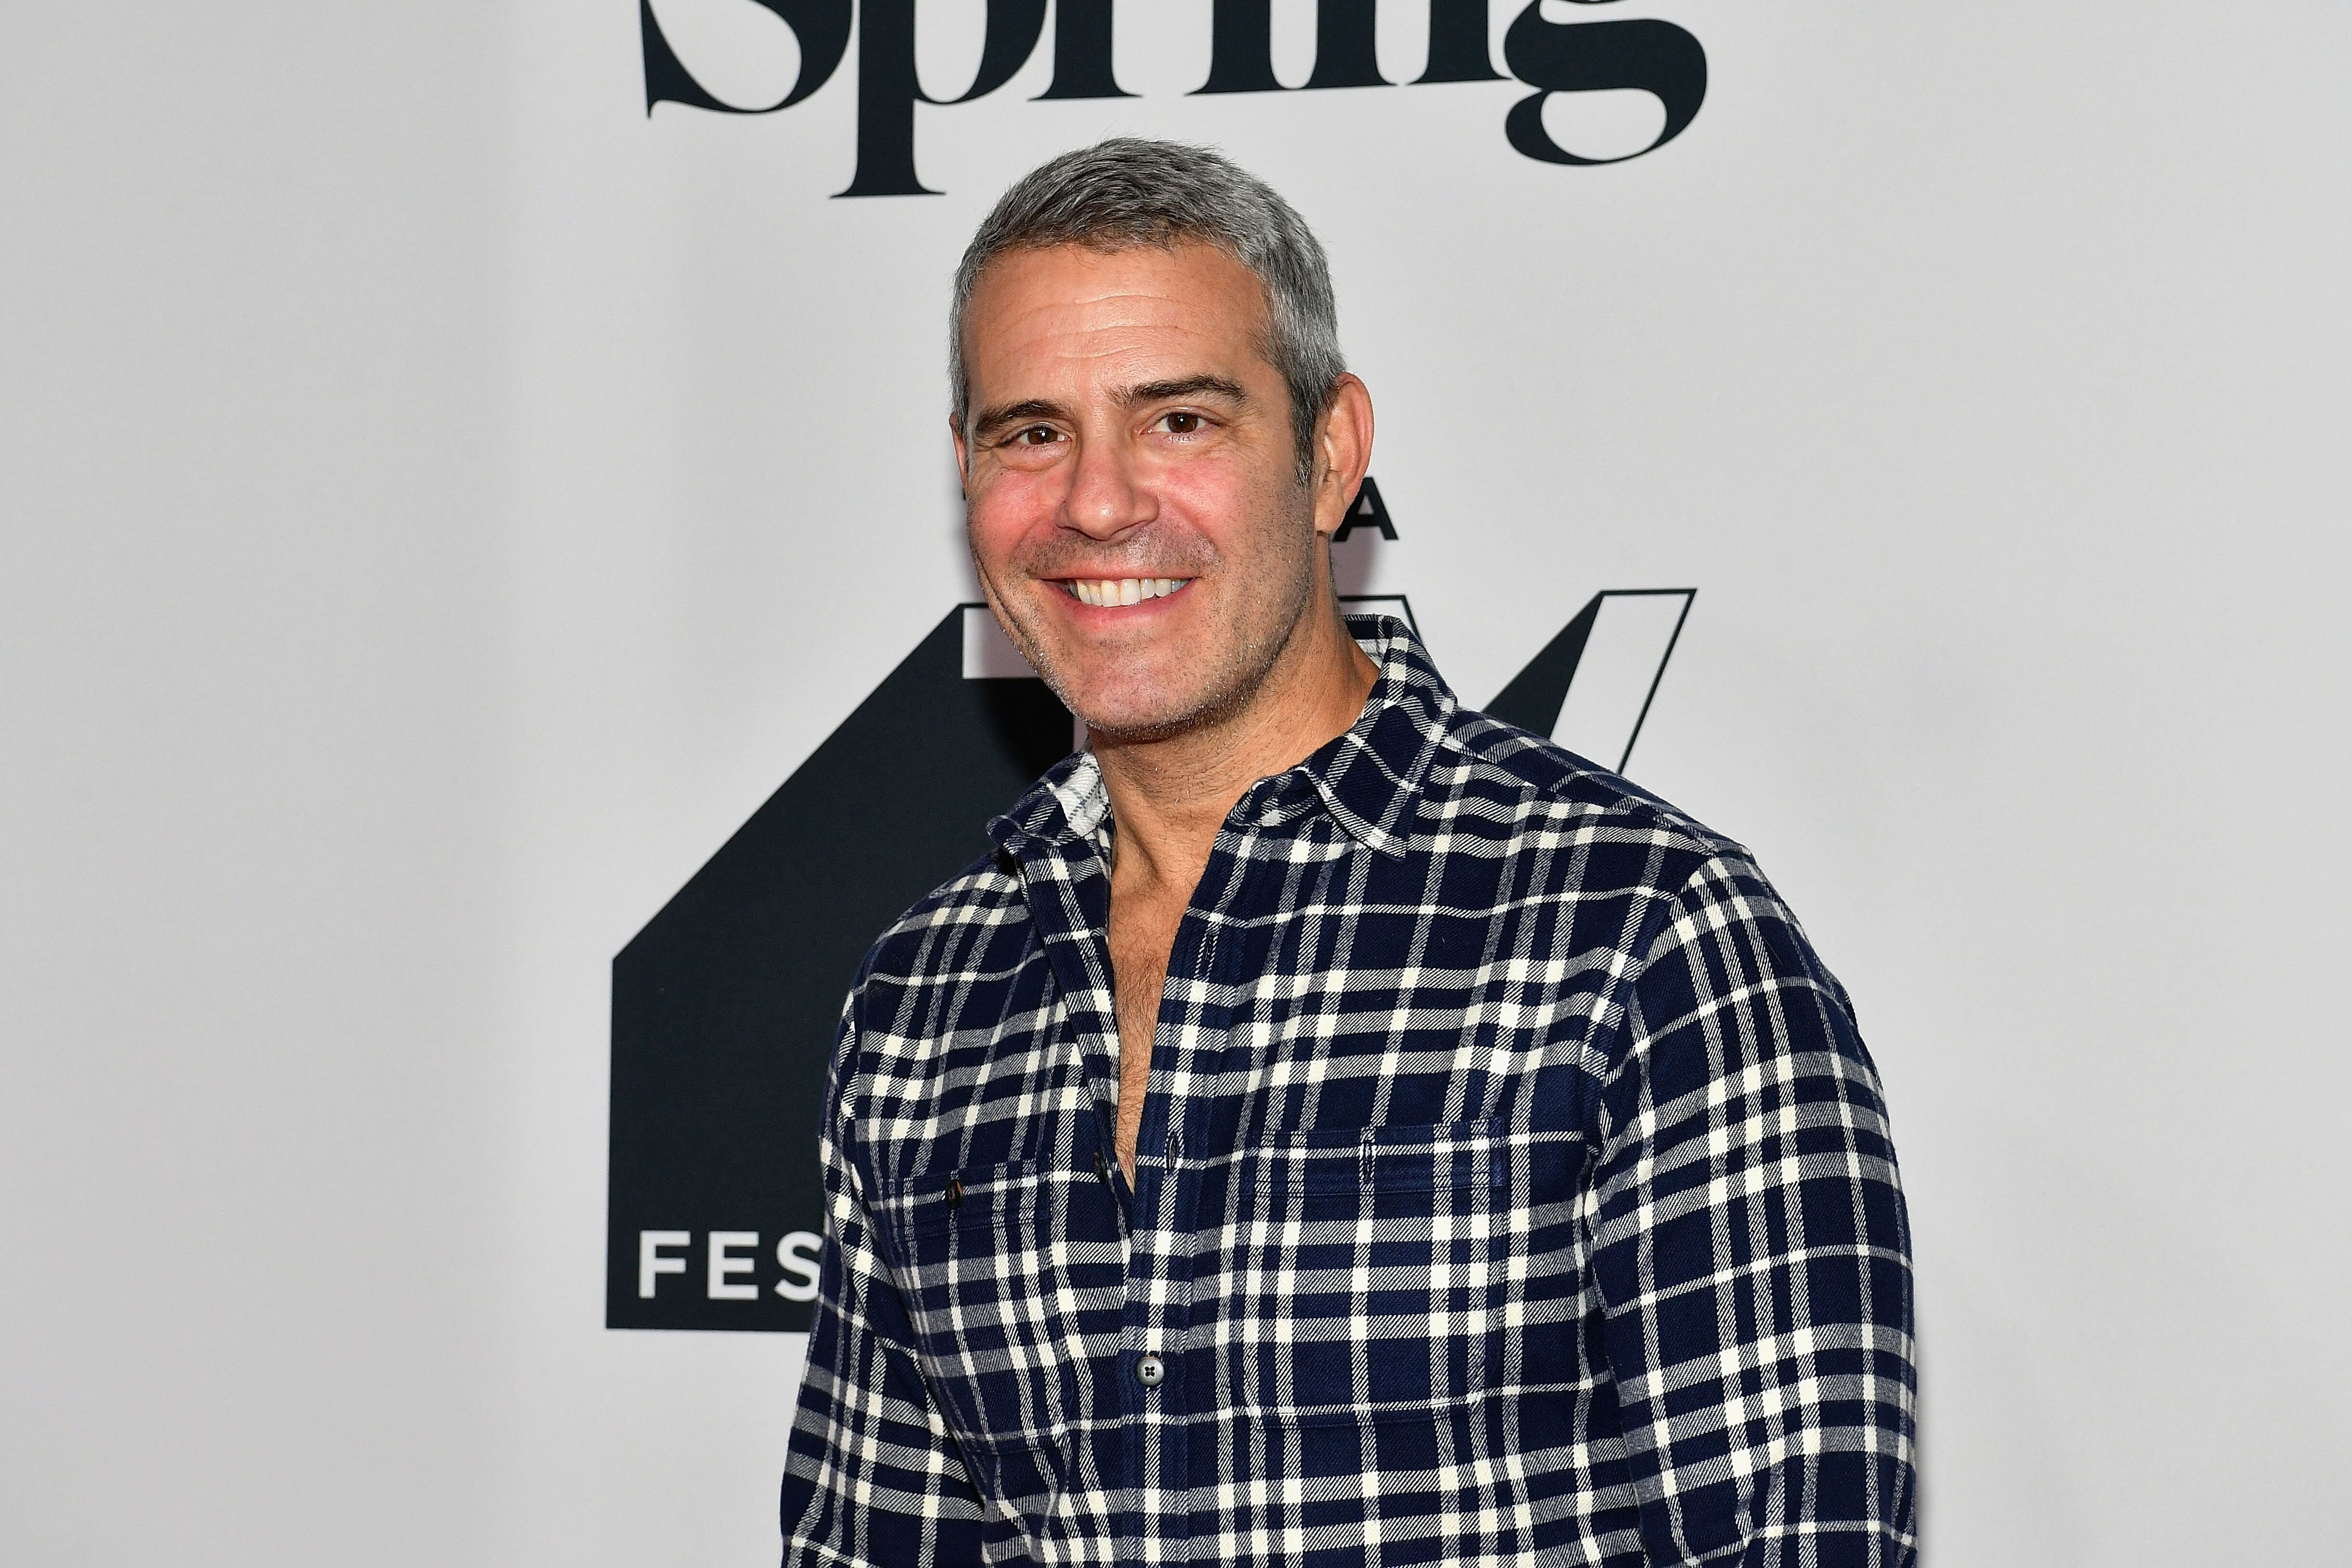 Andy Cohen attends the Tribeca talks panel during the 2018 Tribeca TV Festival at Spring Studios on September 23, 2018. | Photo: Getty Images